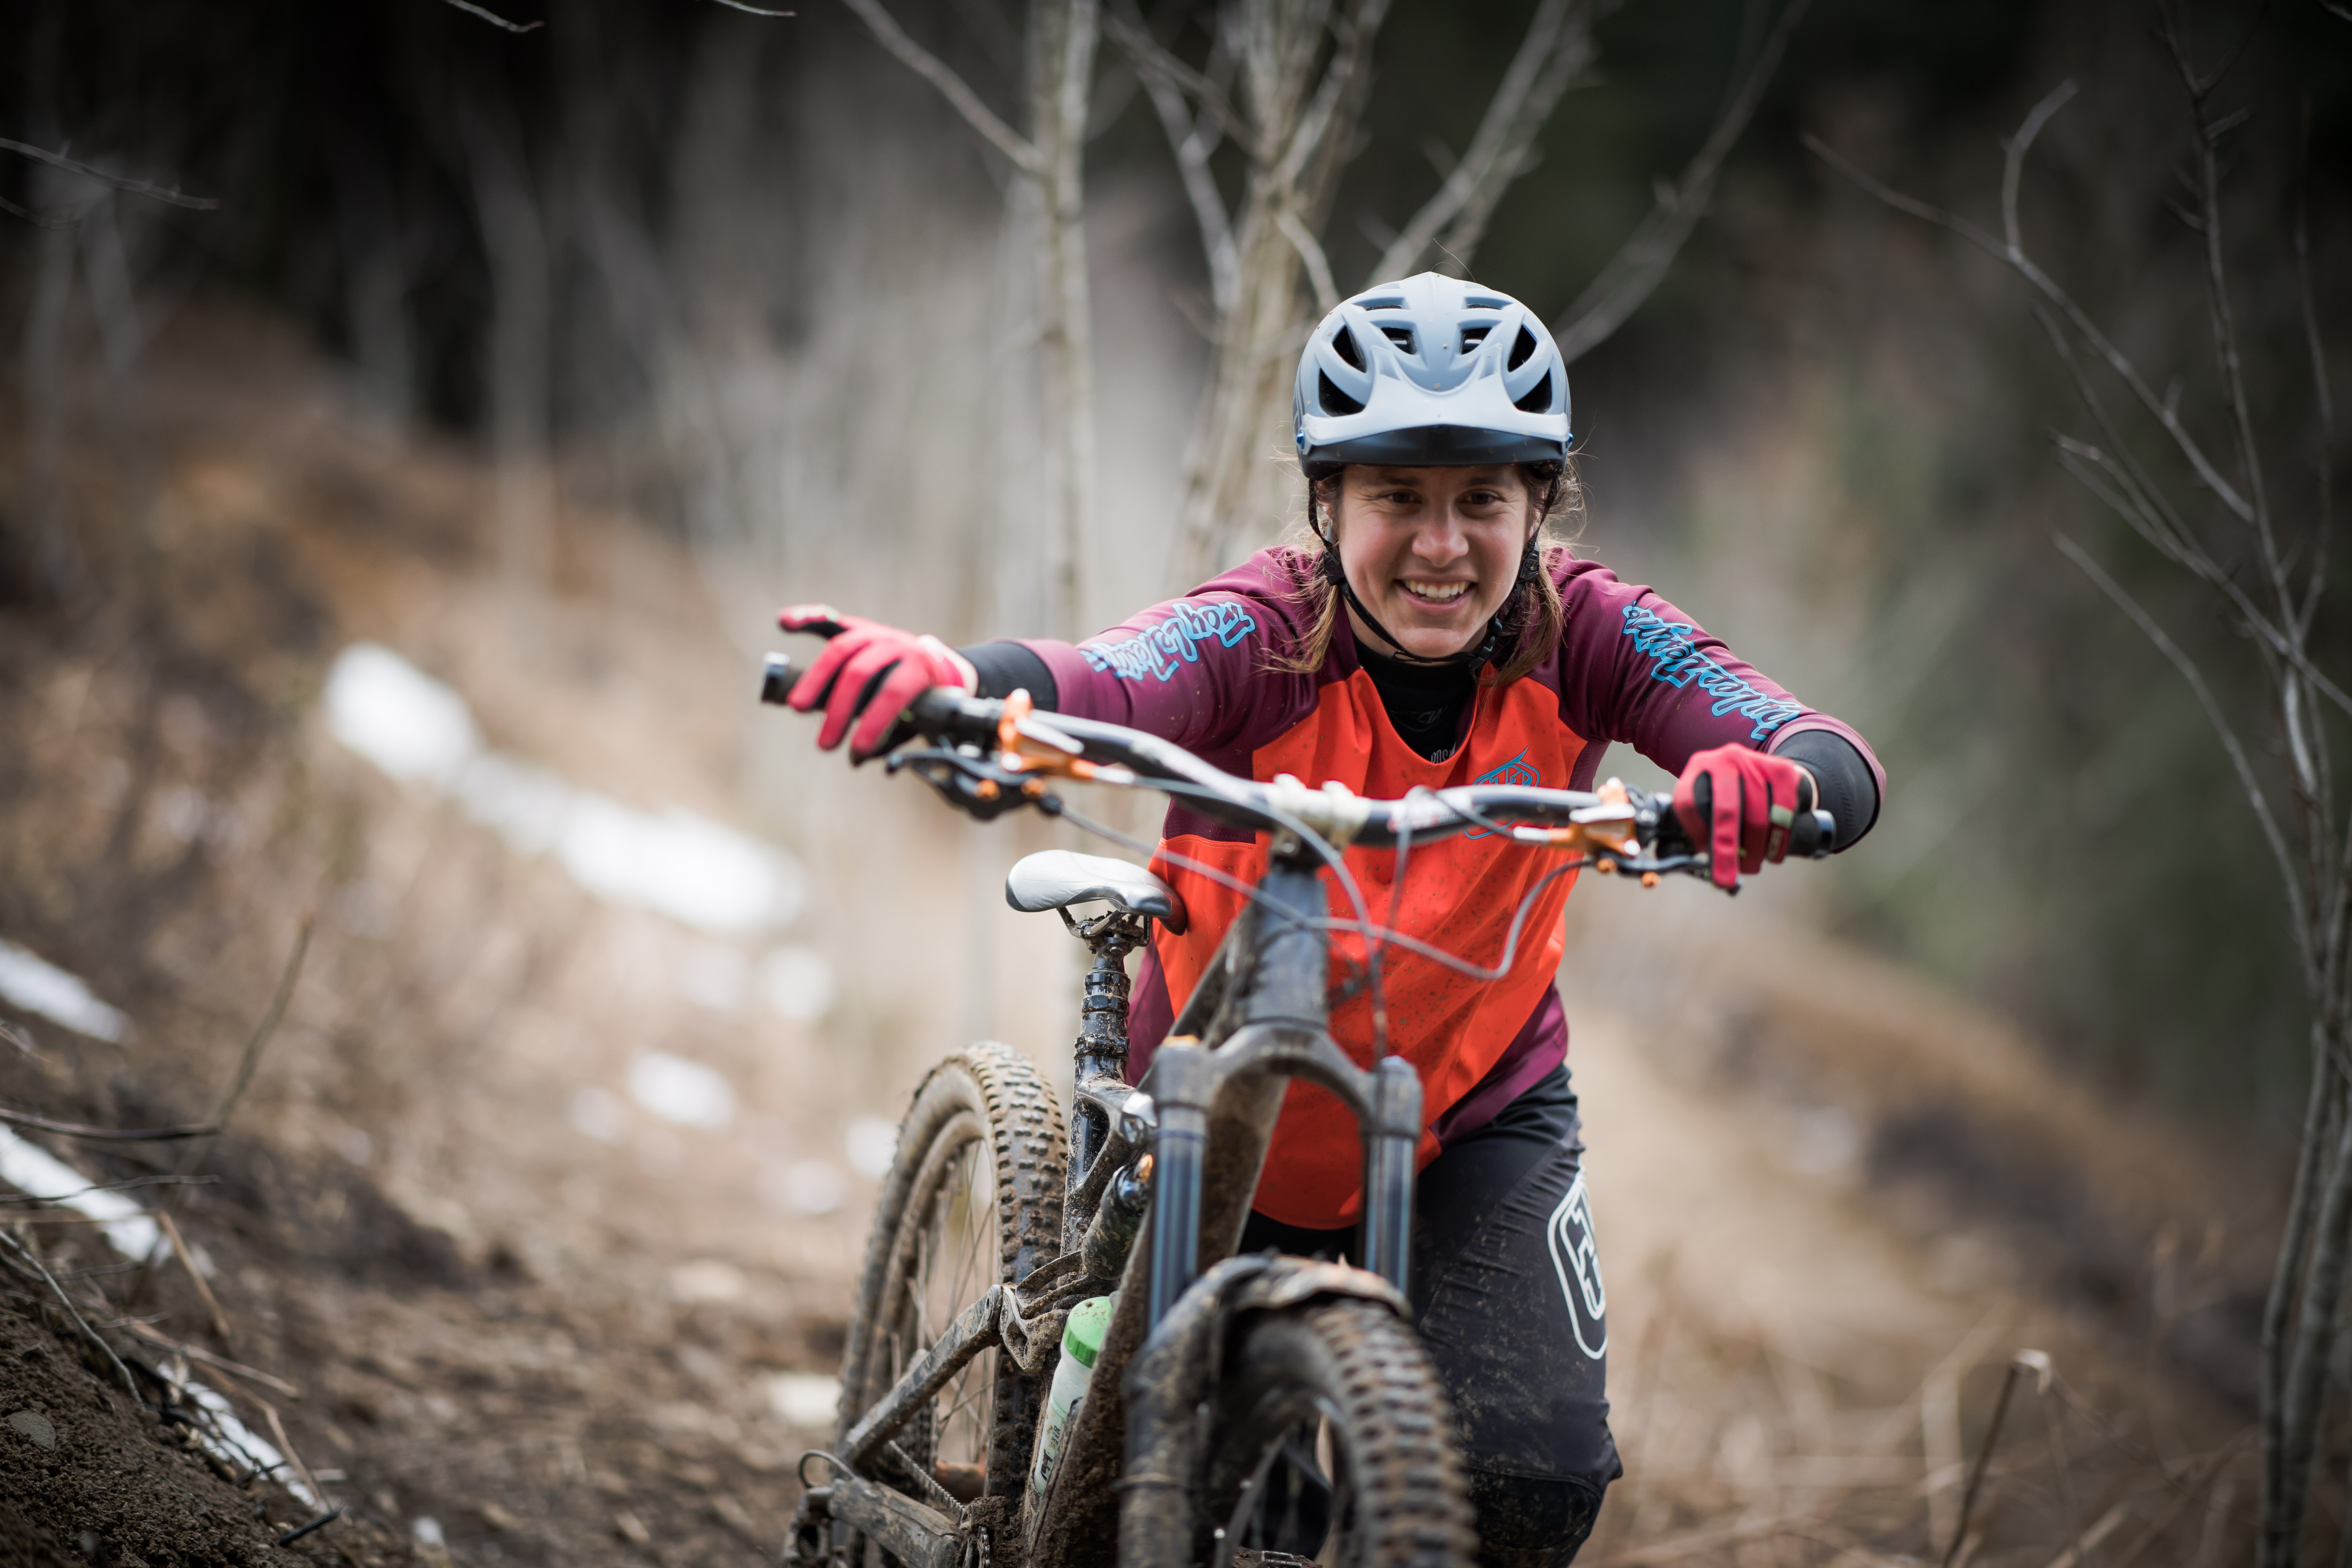 A Story of Adaptability: How Katy Curd Went From 4X World Champ to UK National DH Champion